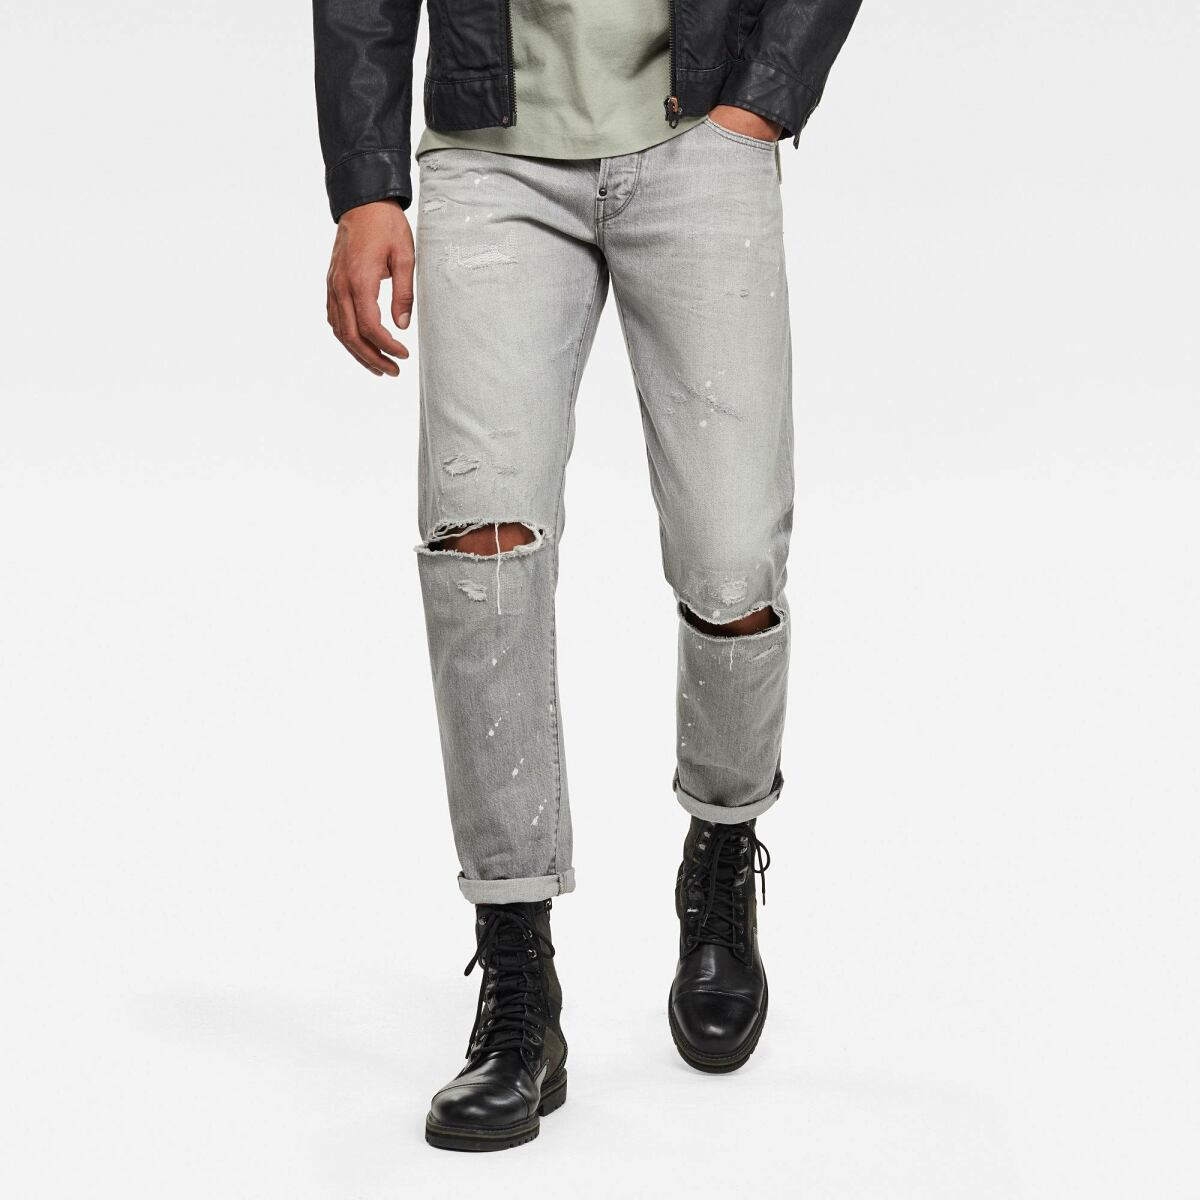 Grey Man Jeans 3911 Alum Relaxed Tapered Jeans G-Star MEN